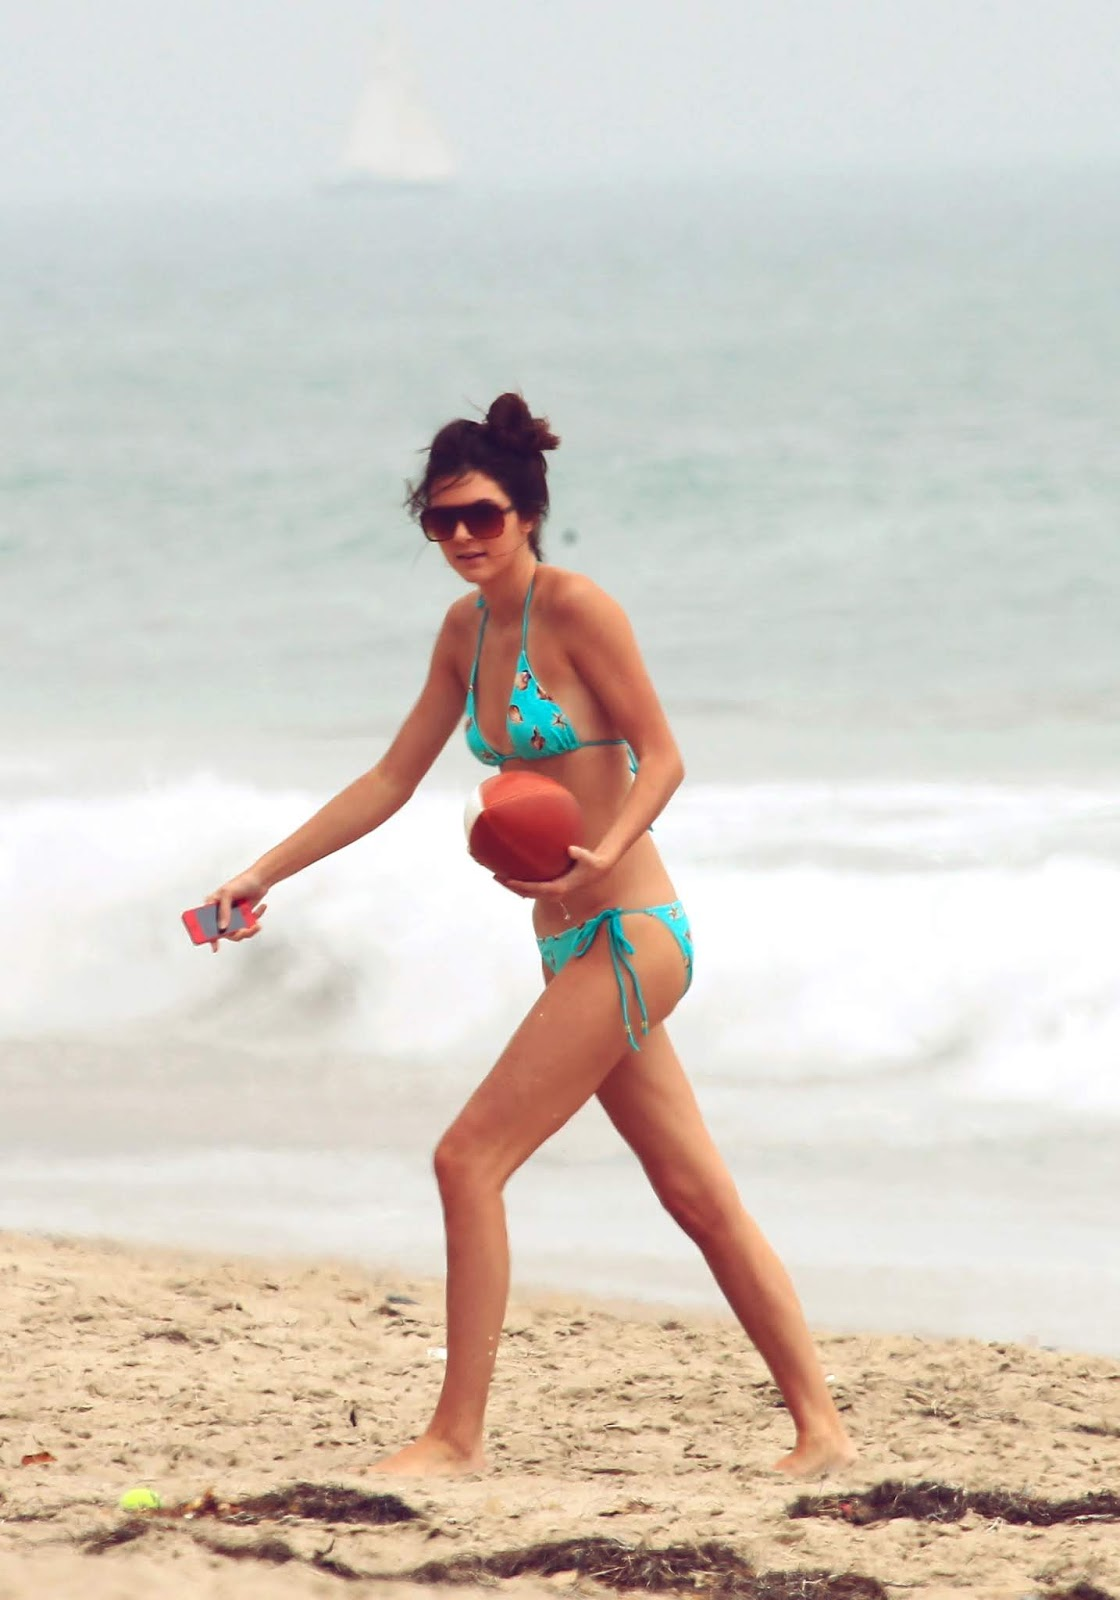 12 - At a Beach with friends in Malibu California on July 14, 2012